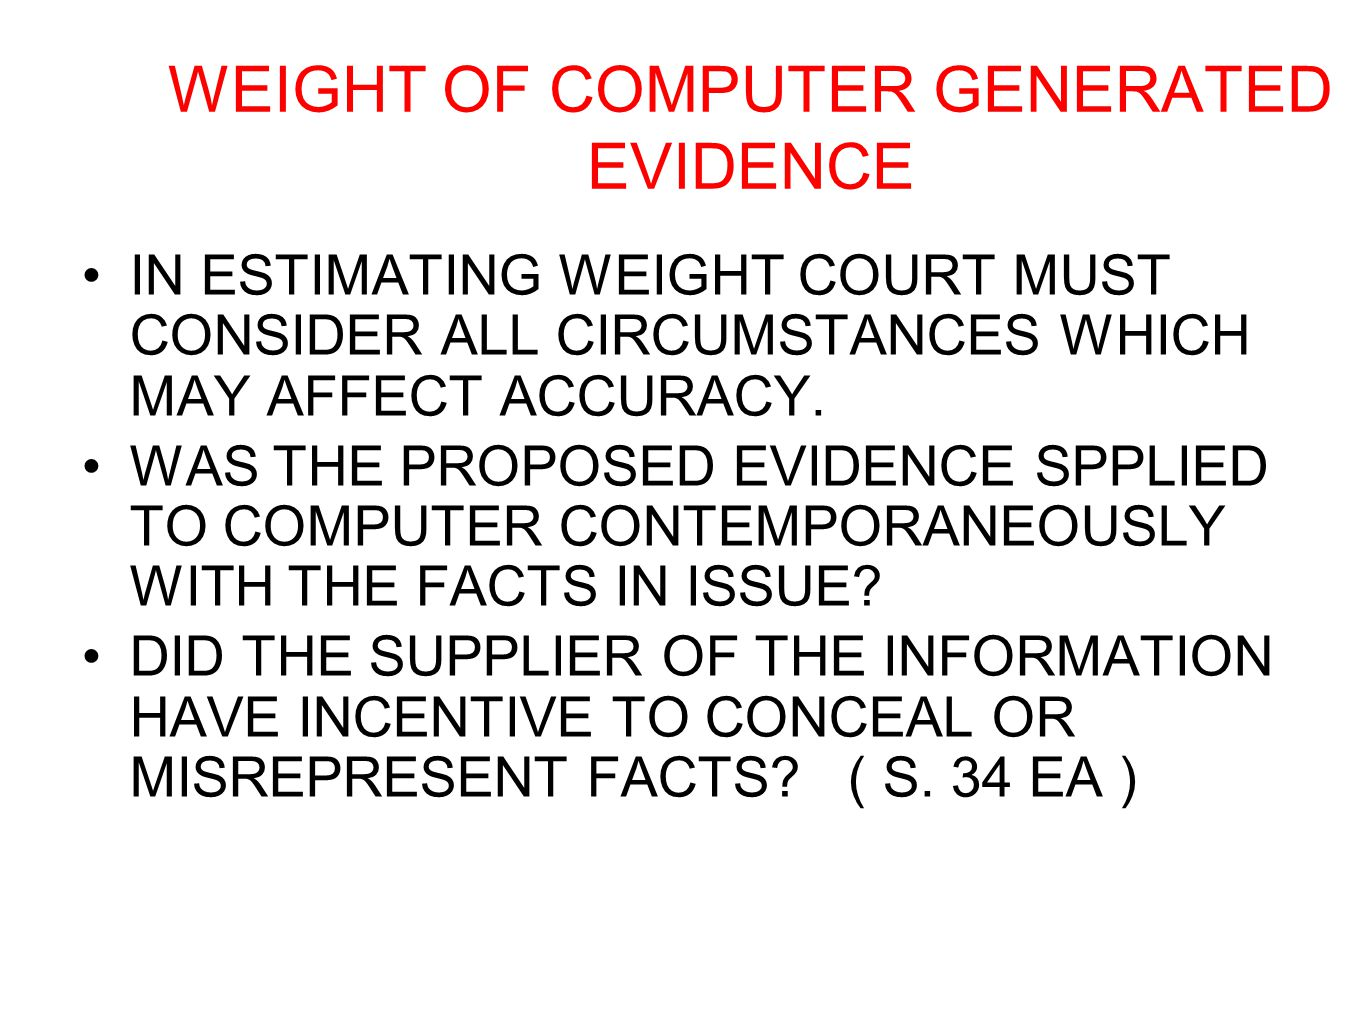 WEIGHT OF COMPUTER GENERATED EVIDENCE